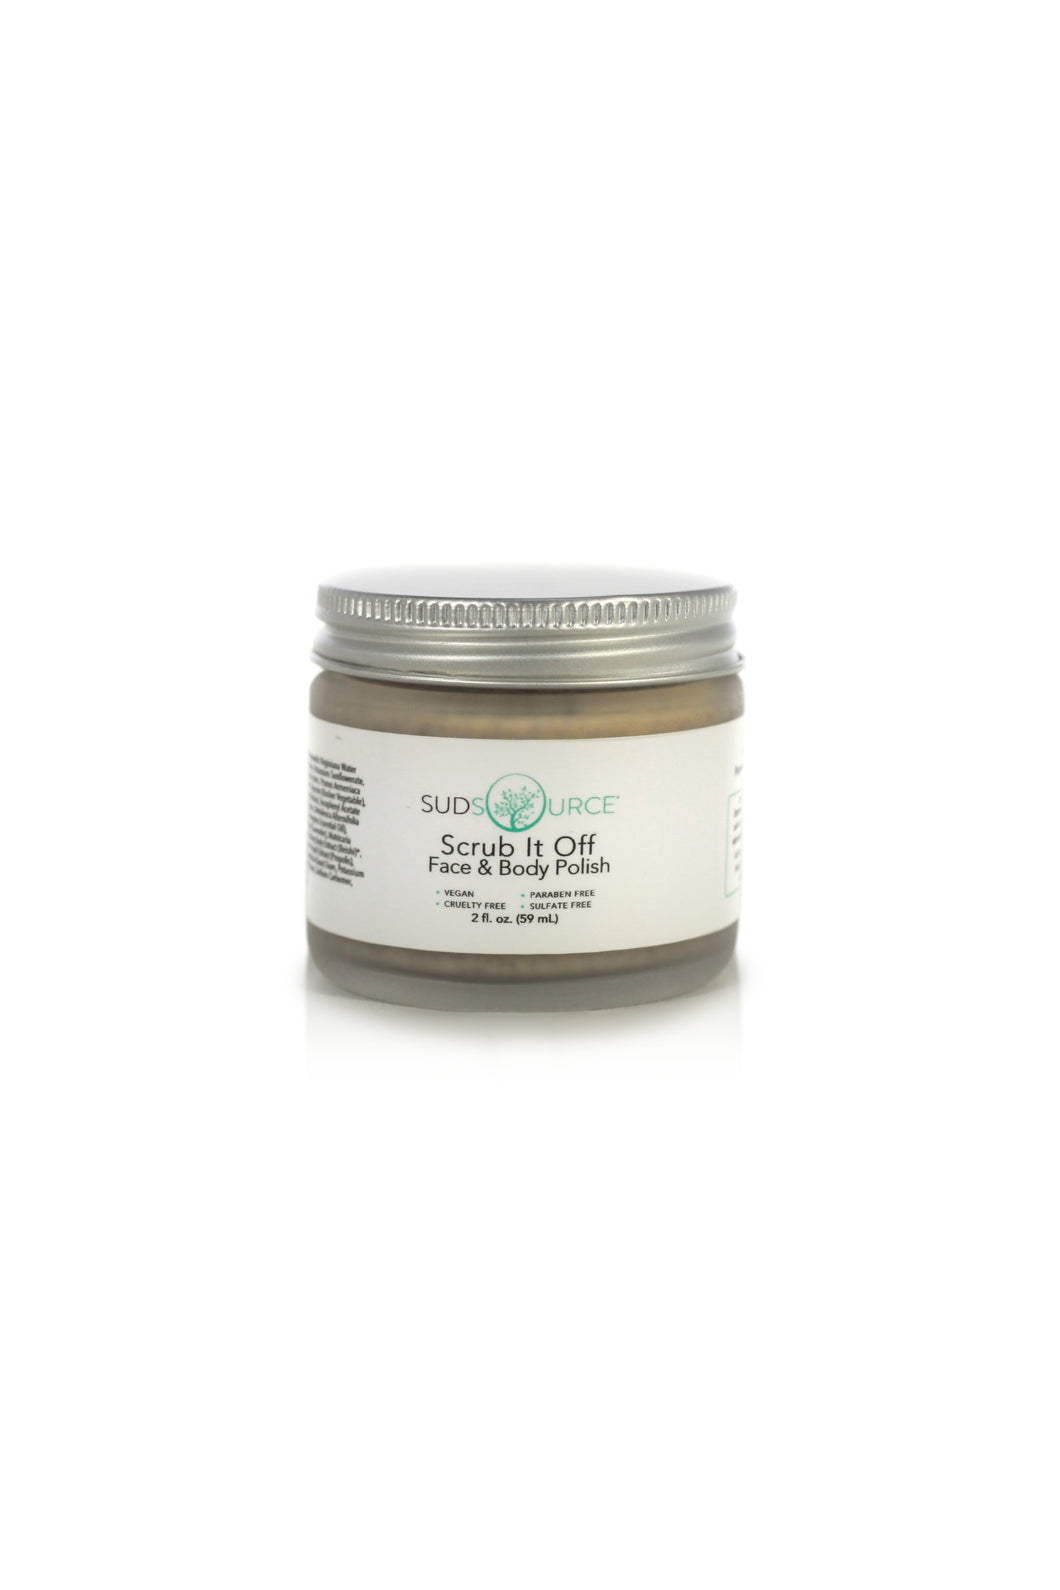 Scrub It Off Face & Body Polish (2oz)